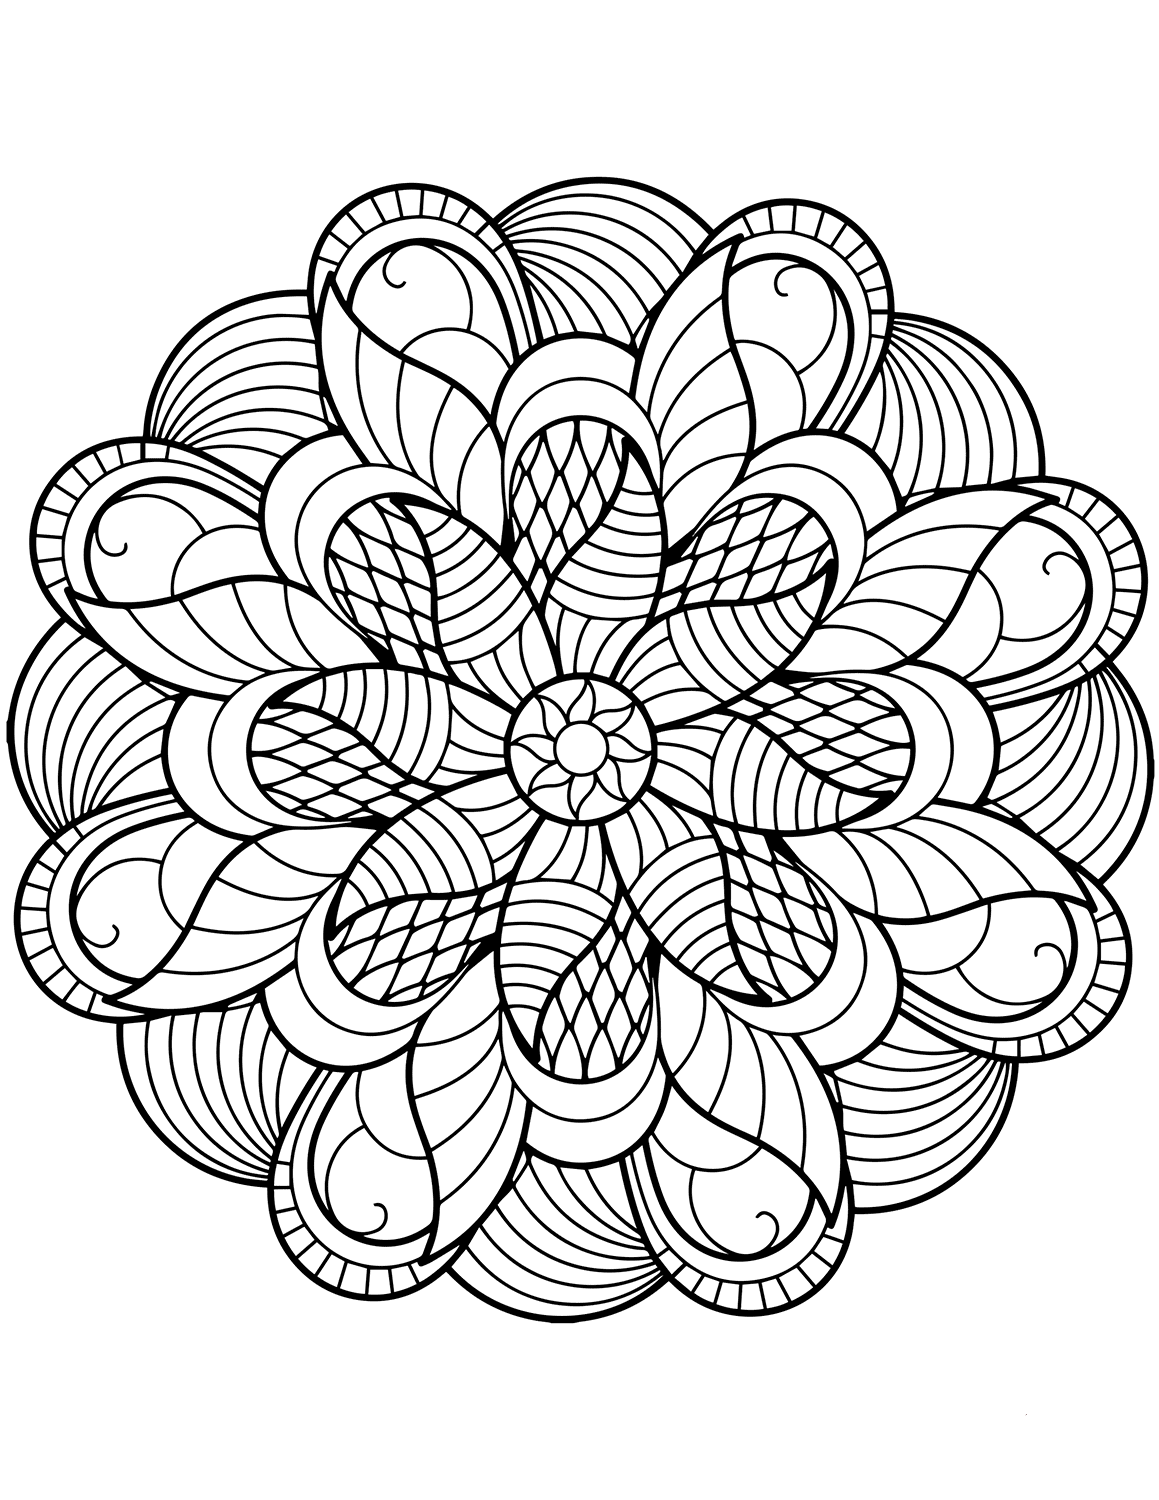 mandela colouring flower mandala coloring pages best coloring pages for kids colouring mandela